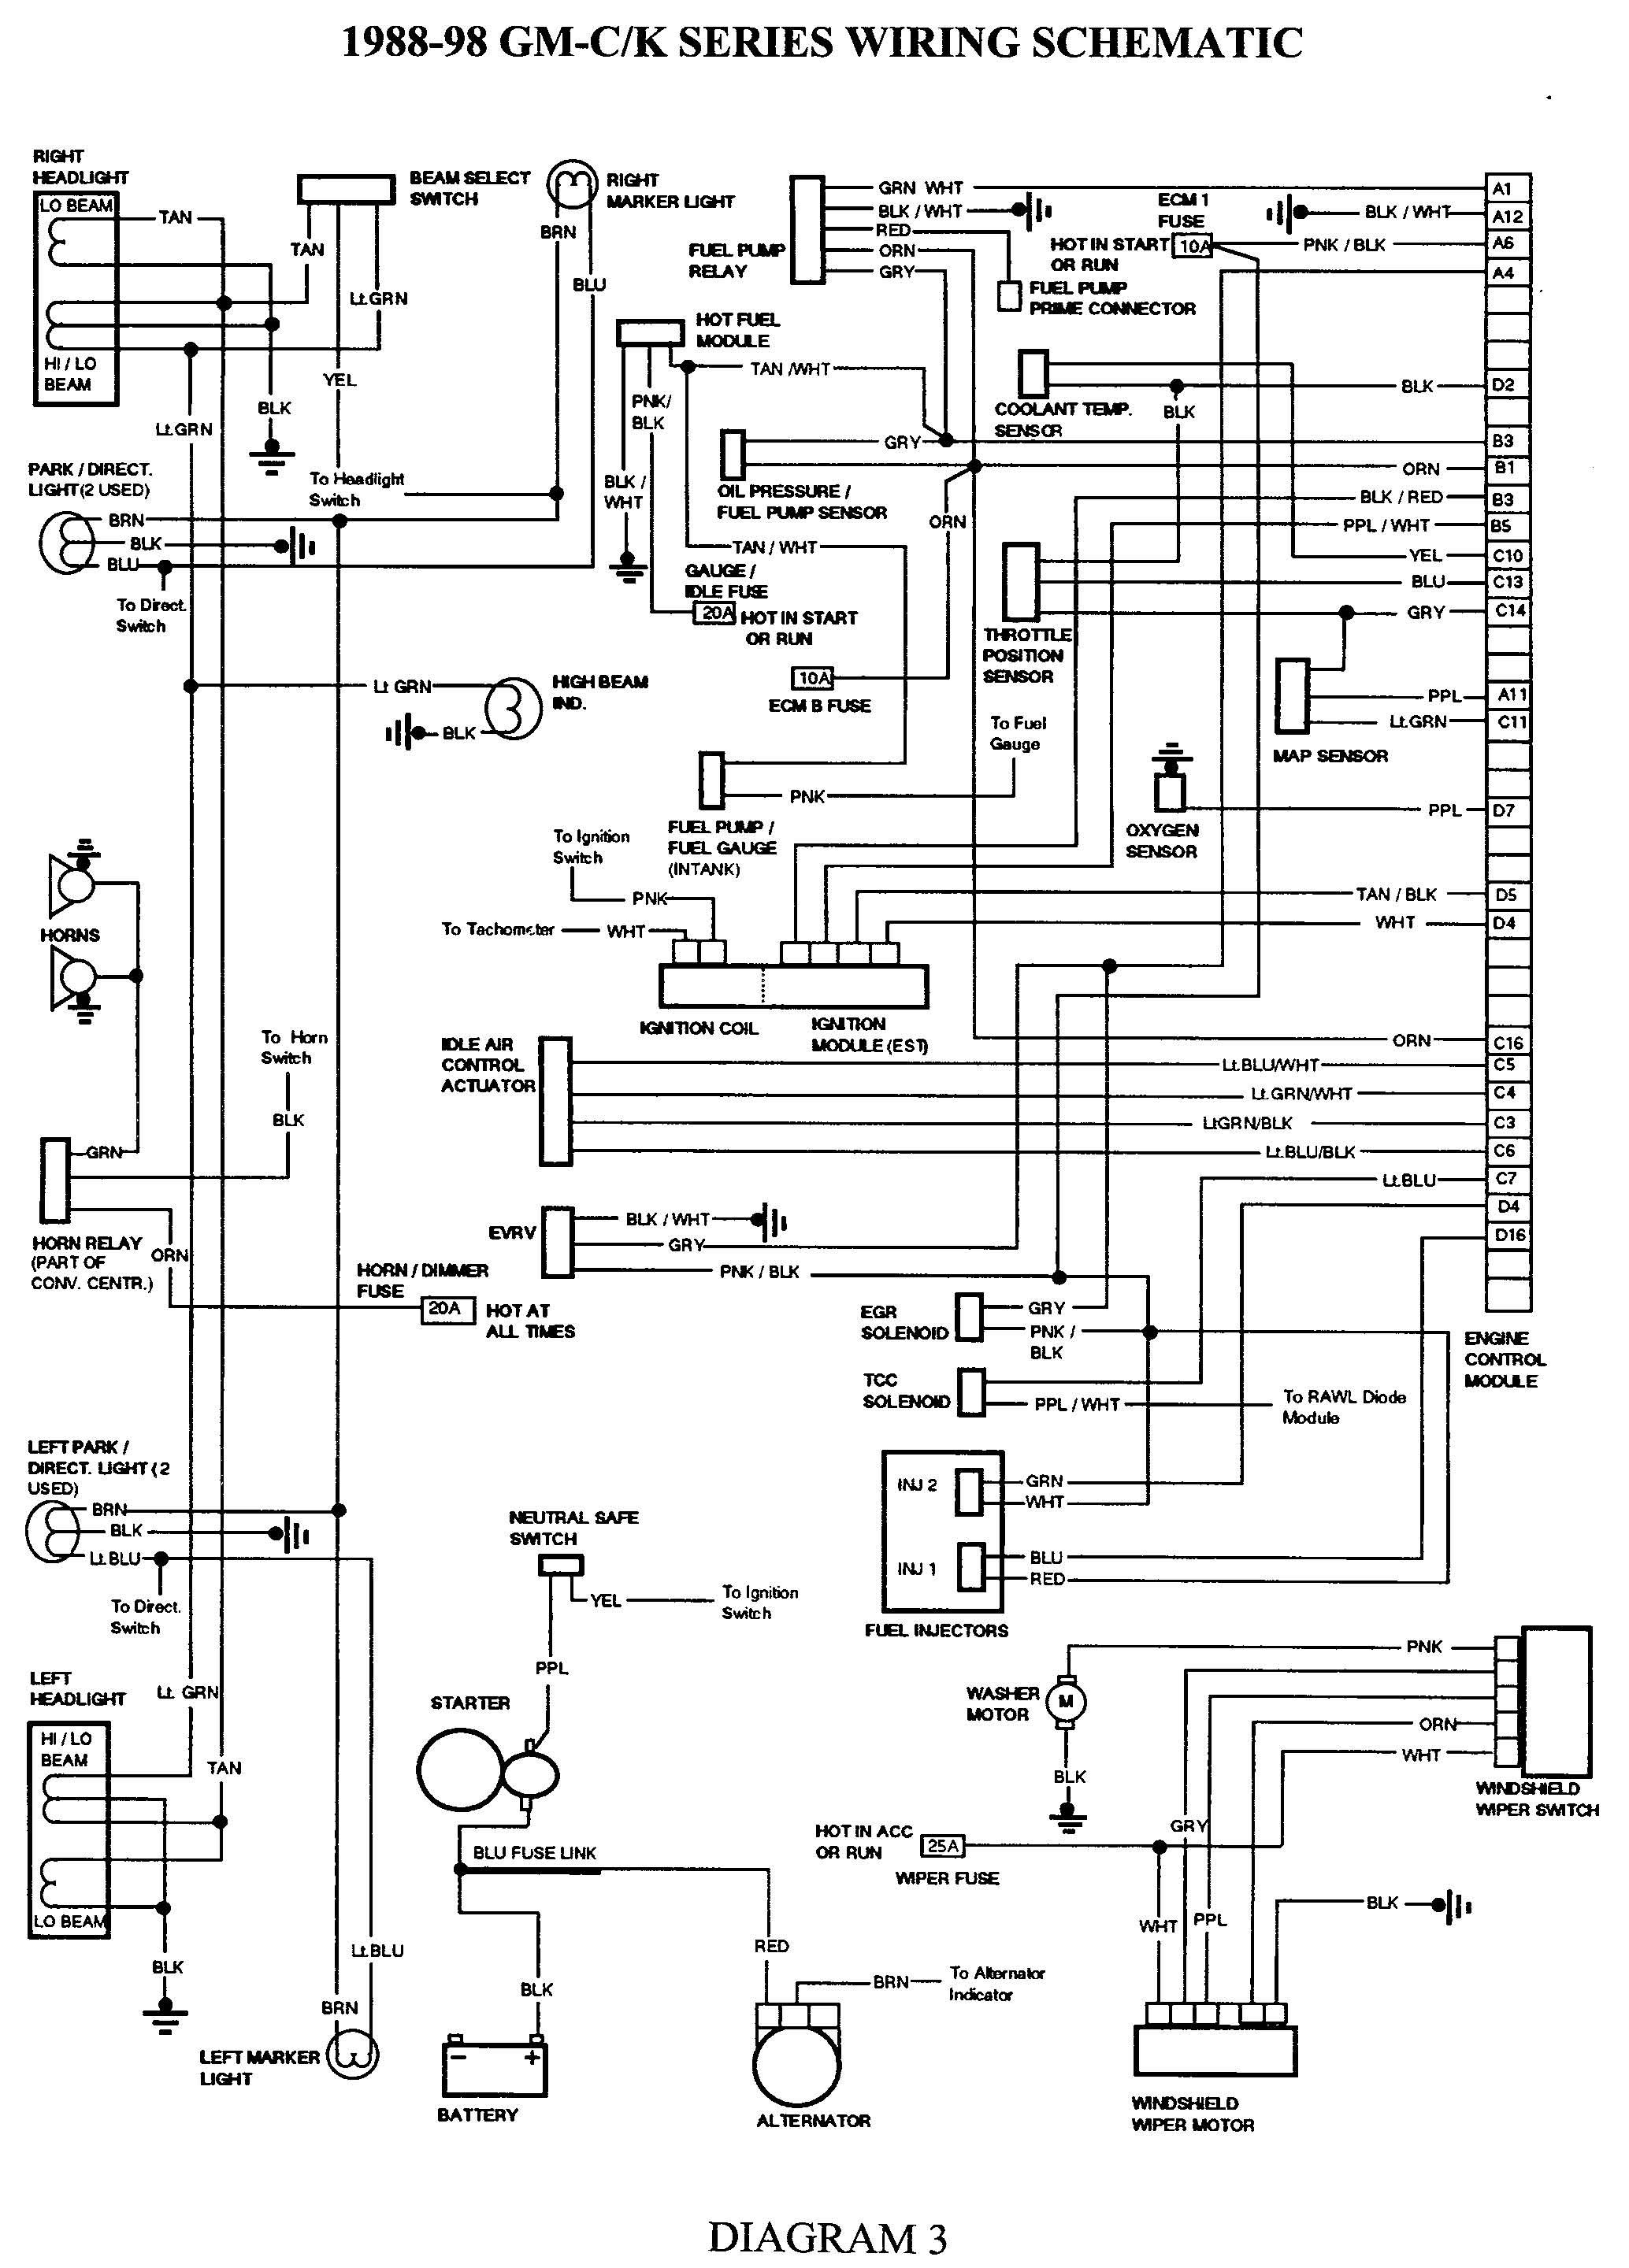 Gmc Truck Wiring Diagrams On Gm Wiring Harness Diagram 88 98 Kc 1998 Chevy  Silverado Engine Diagram 1989 Chevy Silverado Wiring Diagram